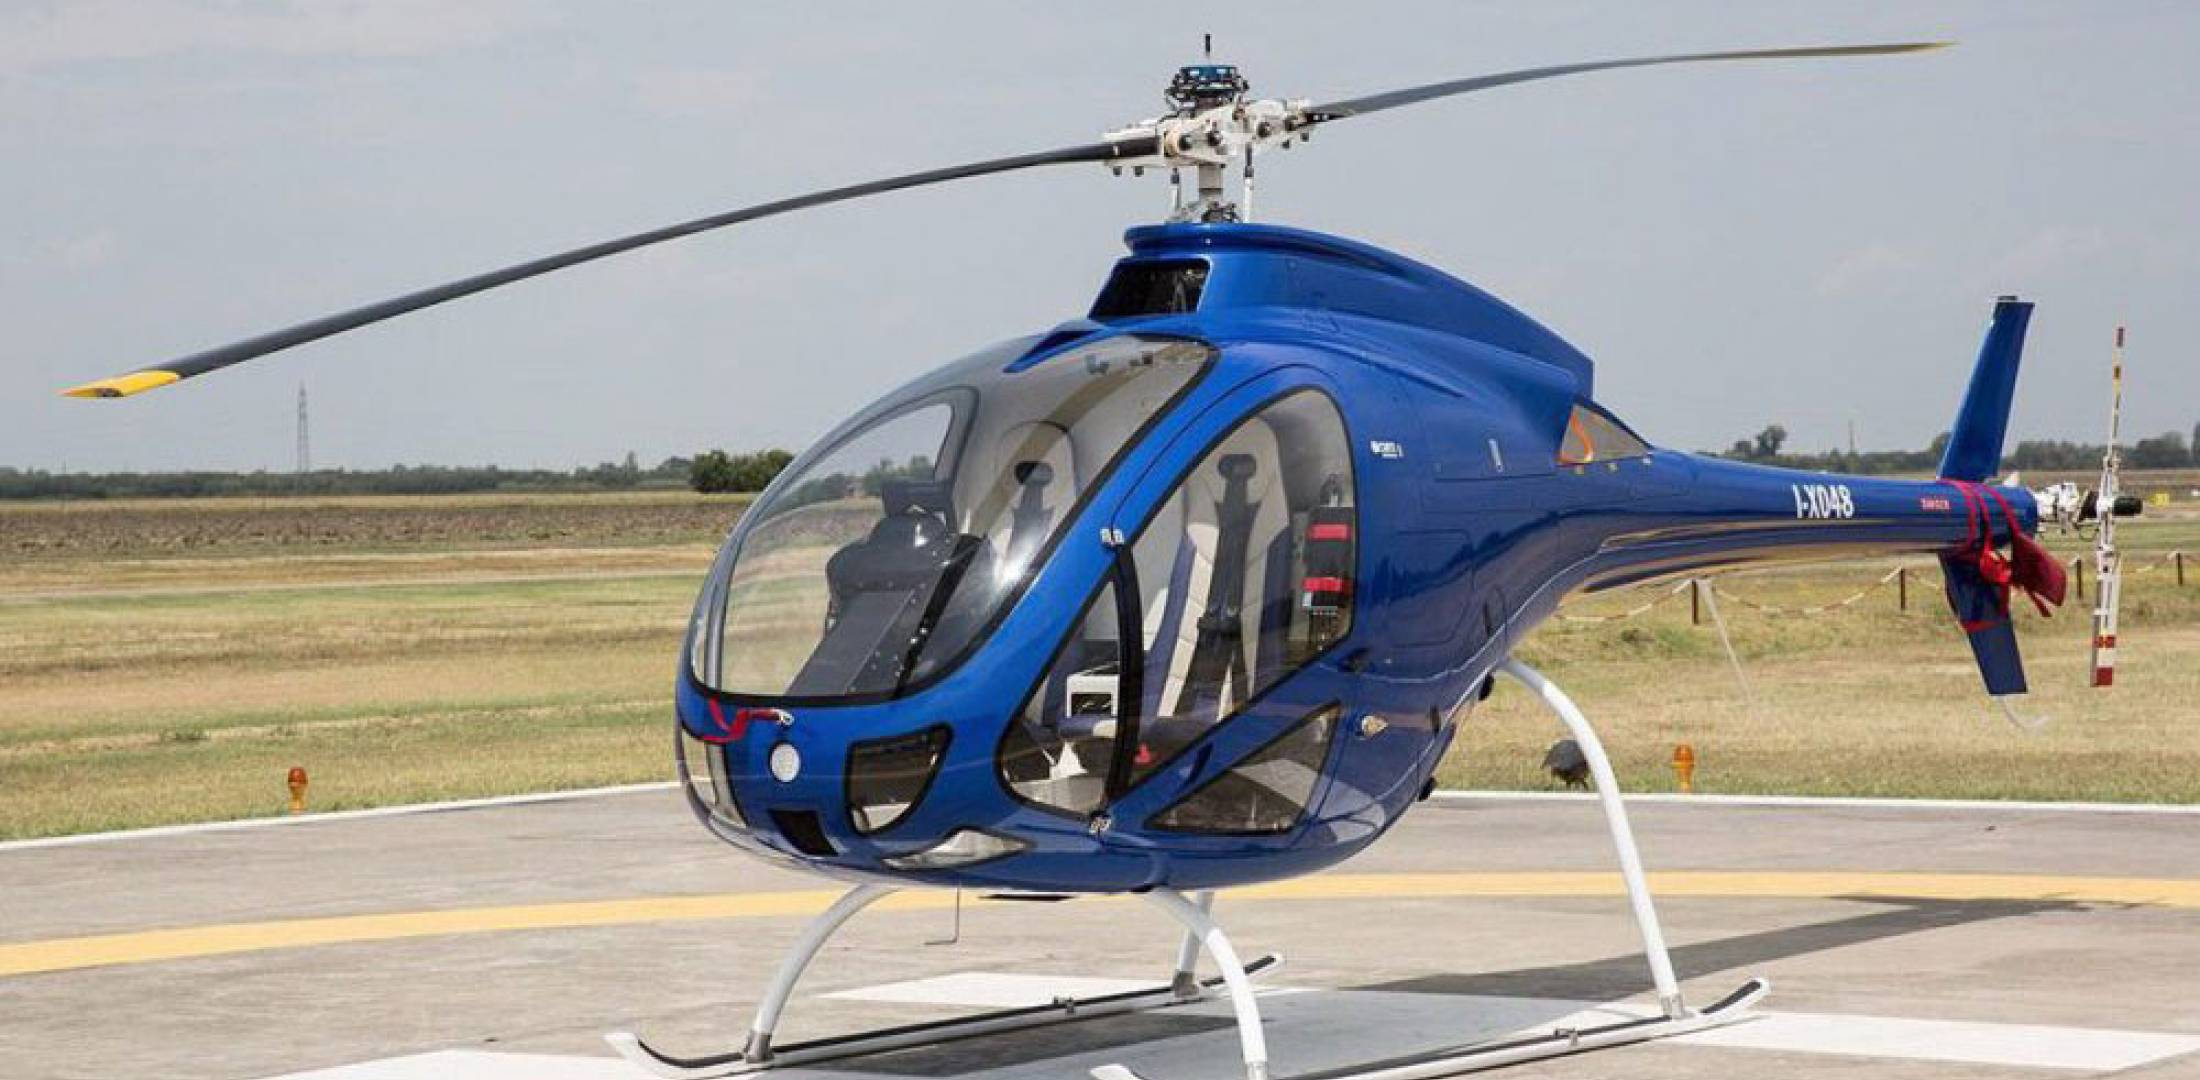 Curti helicopter on ramp